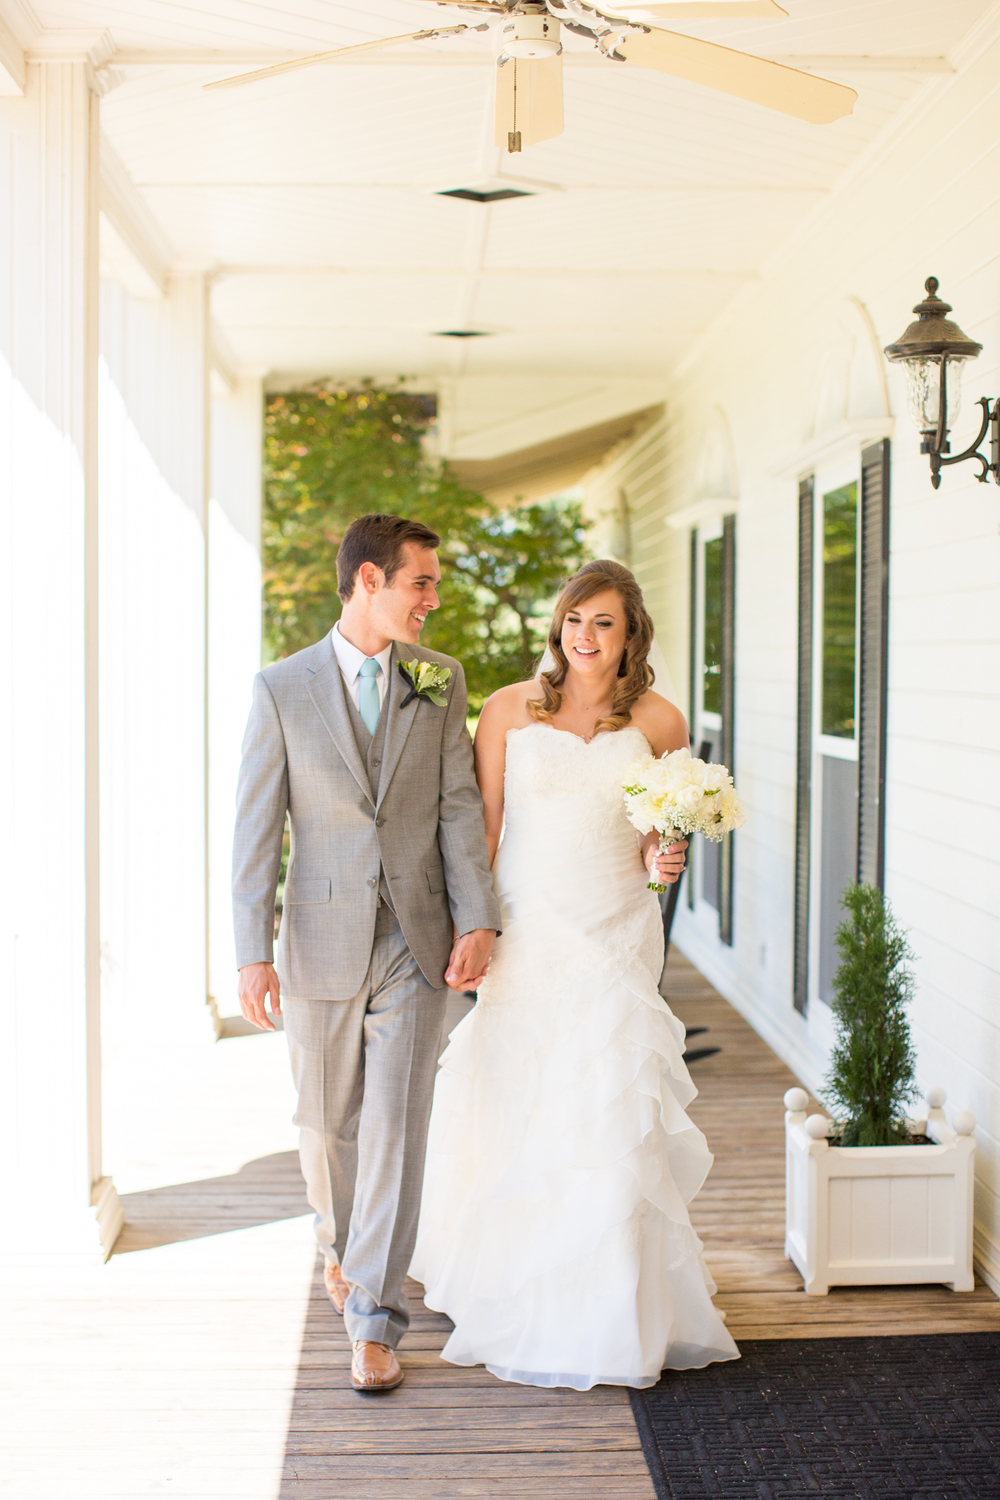 Chico California Wedding and Engagement Photography by TréCreative - Creek Haven Vineyard Estate Wedding Photography (157 of 437).jpg